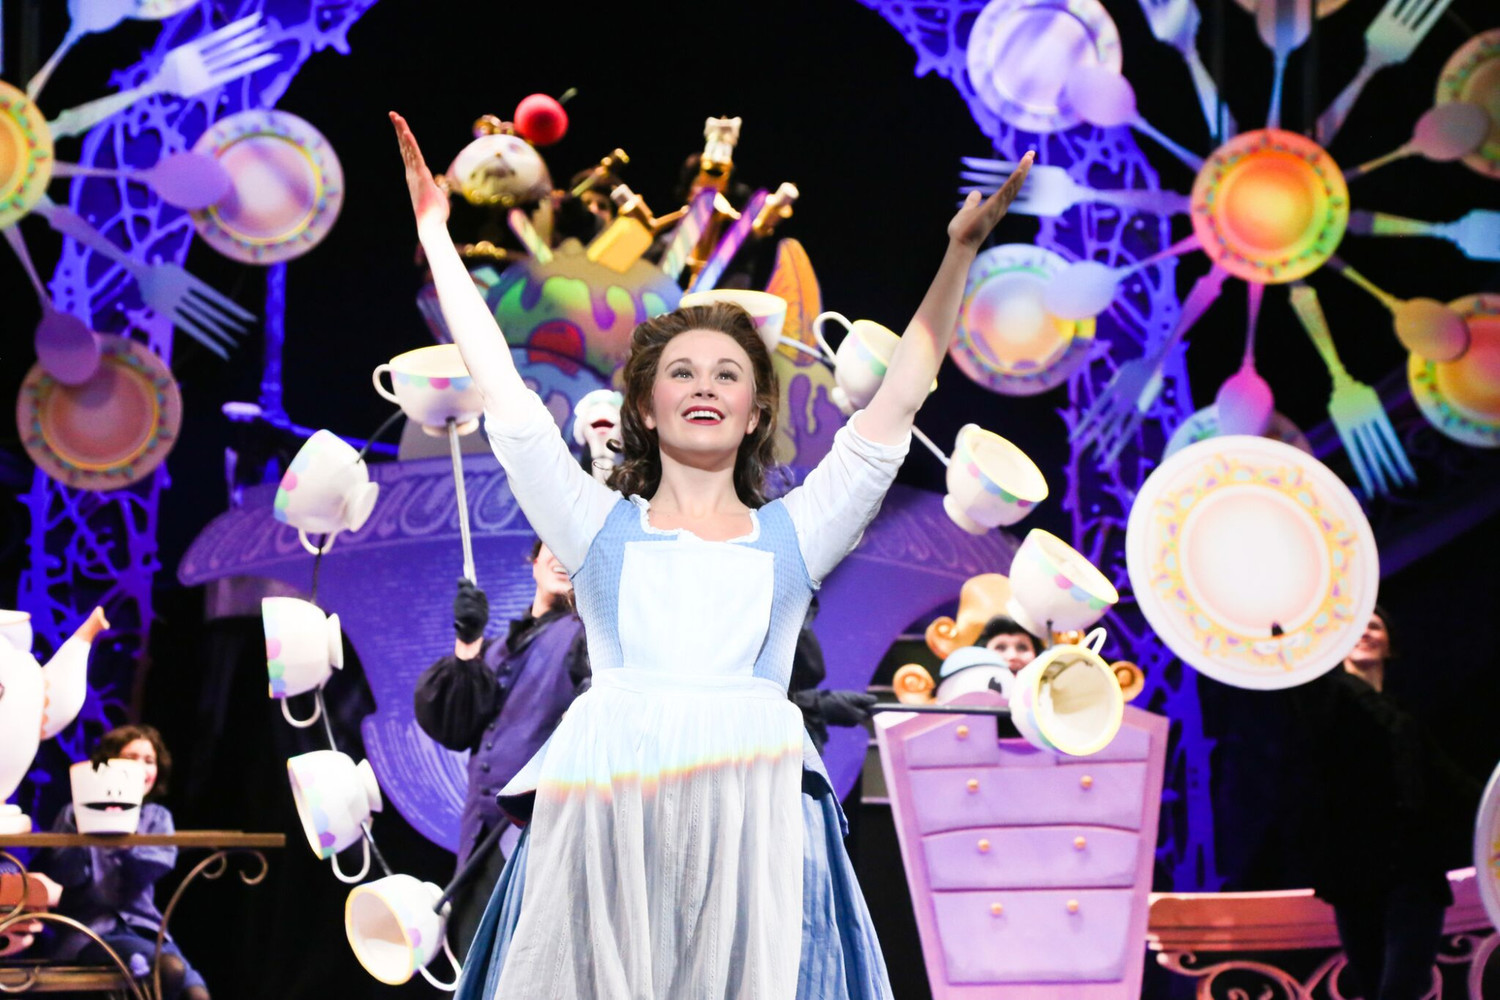 BWW Review: DISNEY BEAUTY AND THE BEAST at Maltz Jupiter Theatre